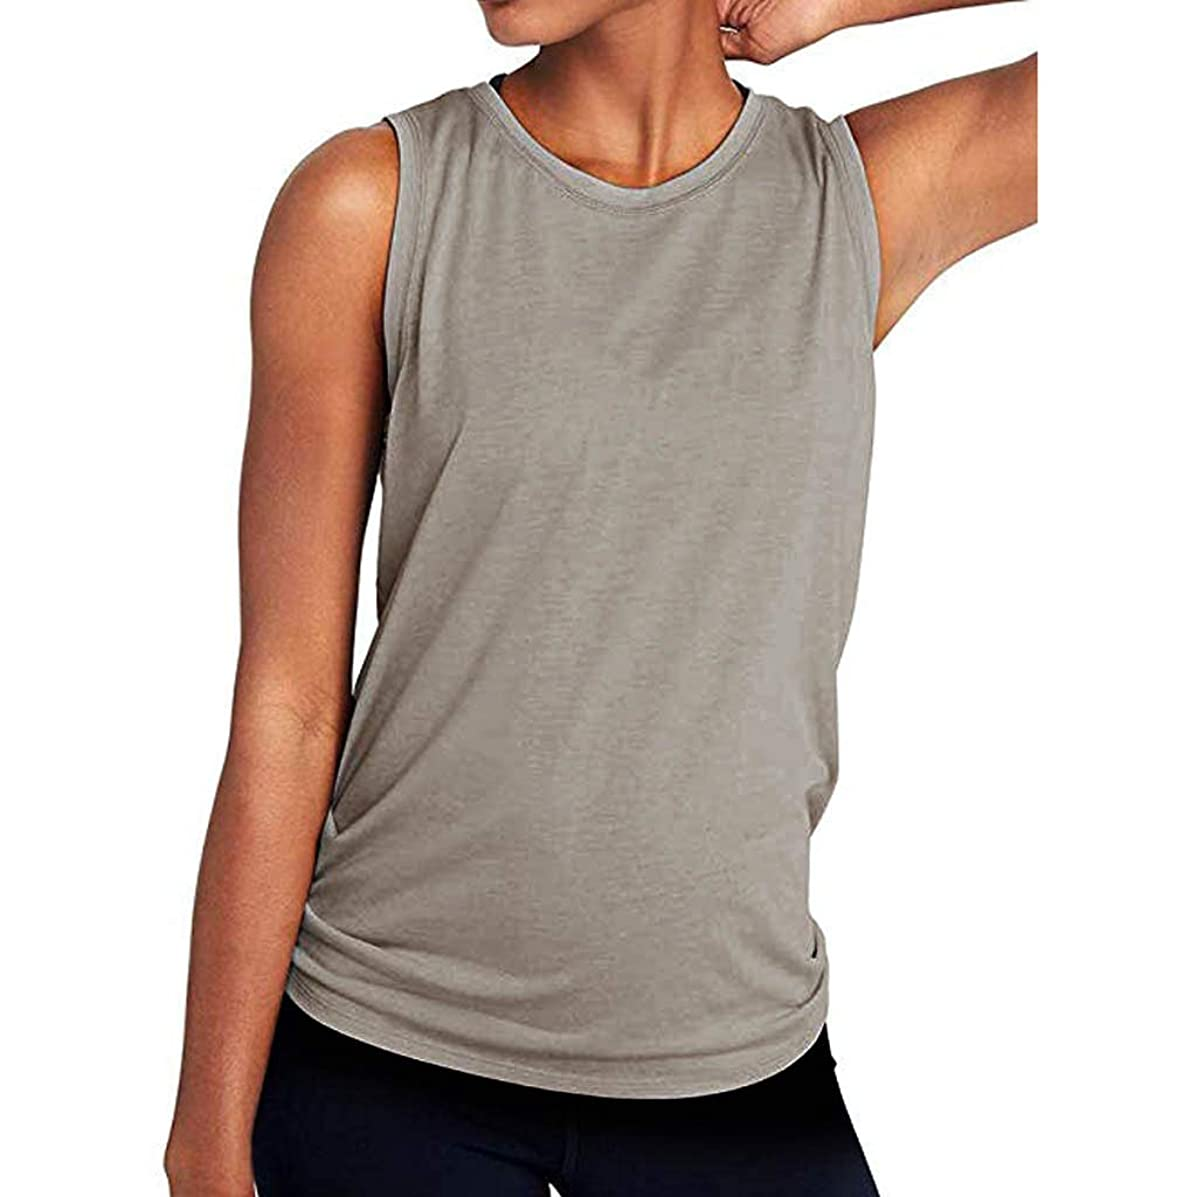 Aotifu Yoga Camisoles T-Shirts Workout Tops Shirts Sexy Mesh Tops Exercise Sports Activewear Cute Open Back (Black,XL)